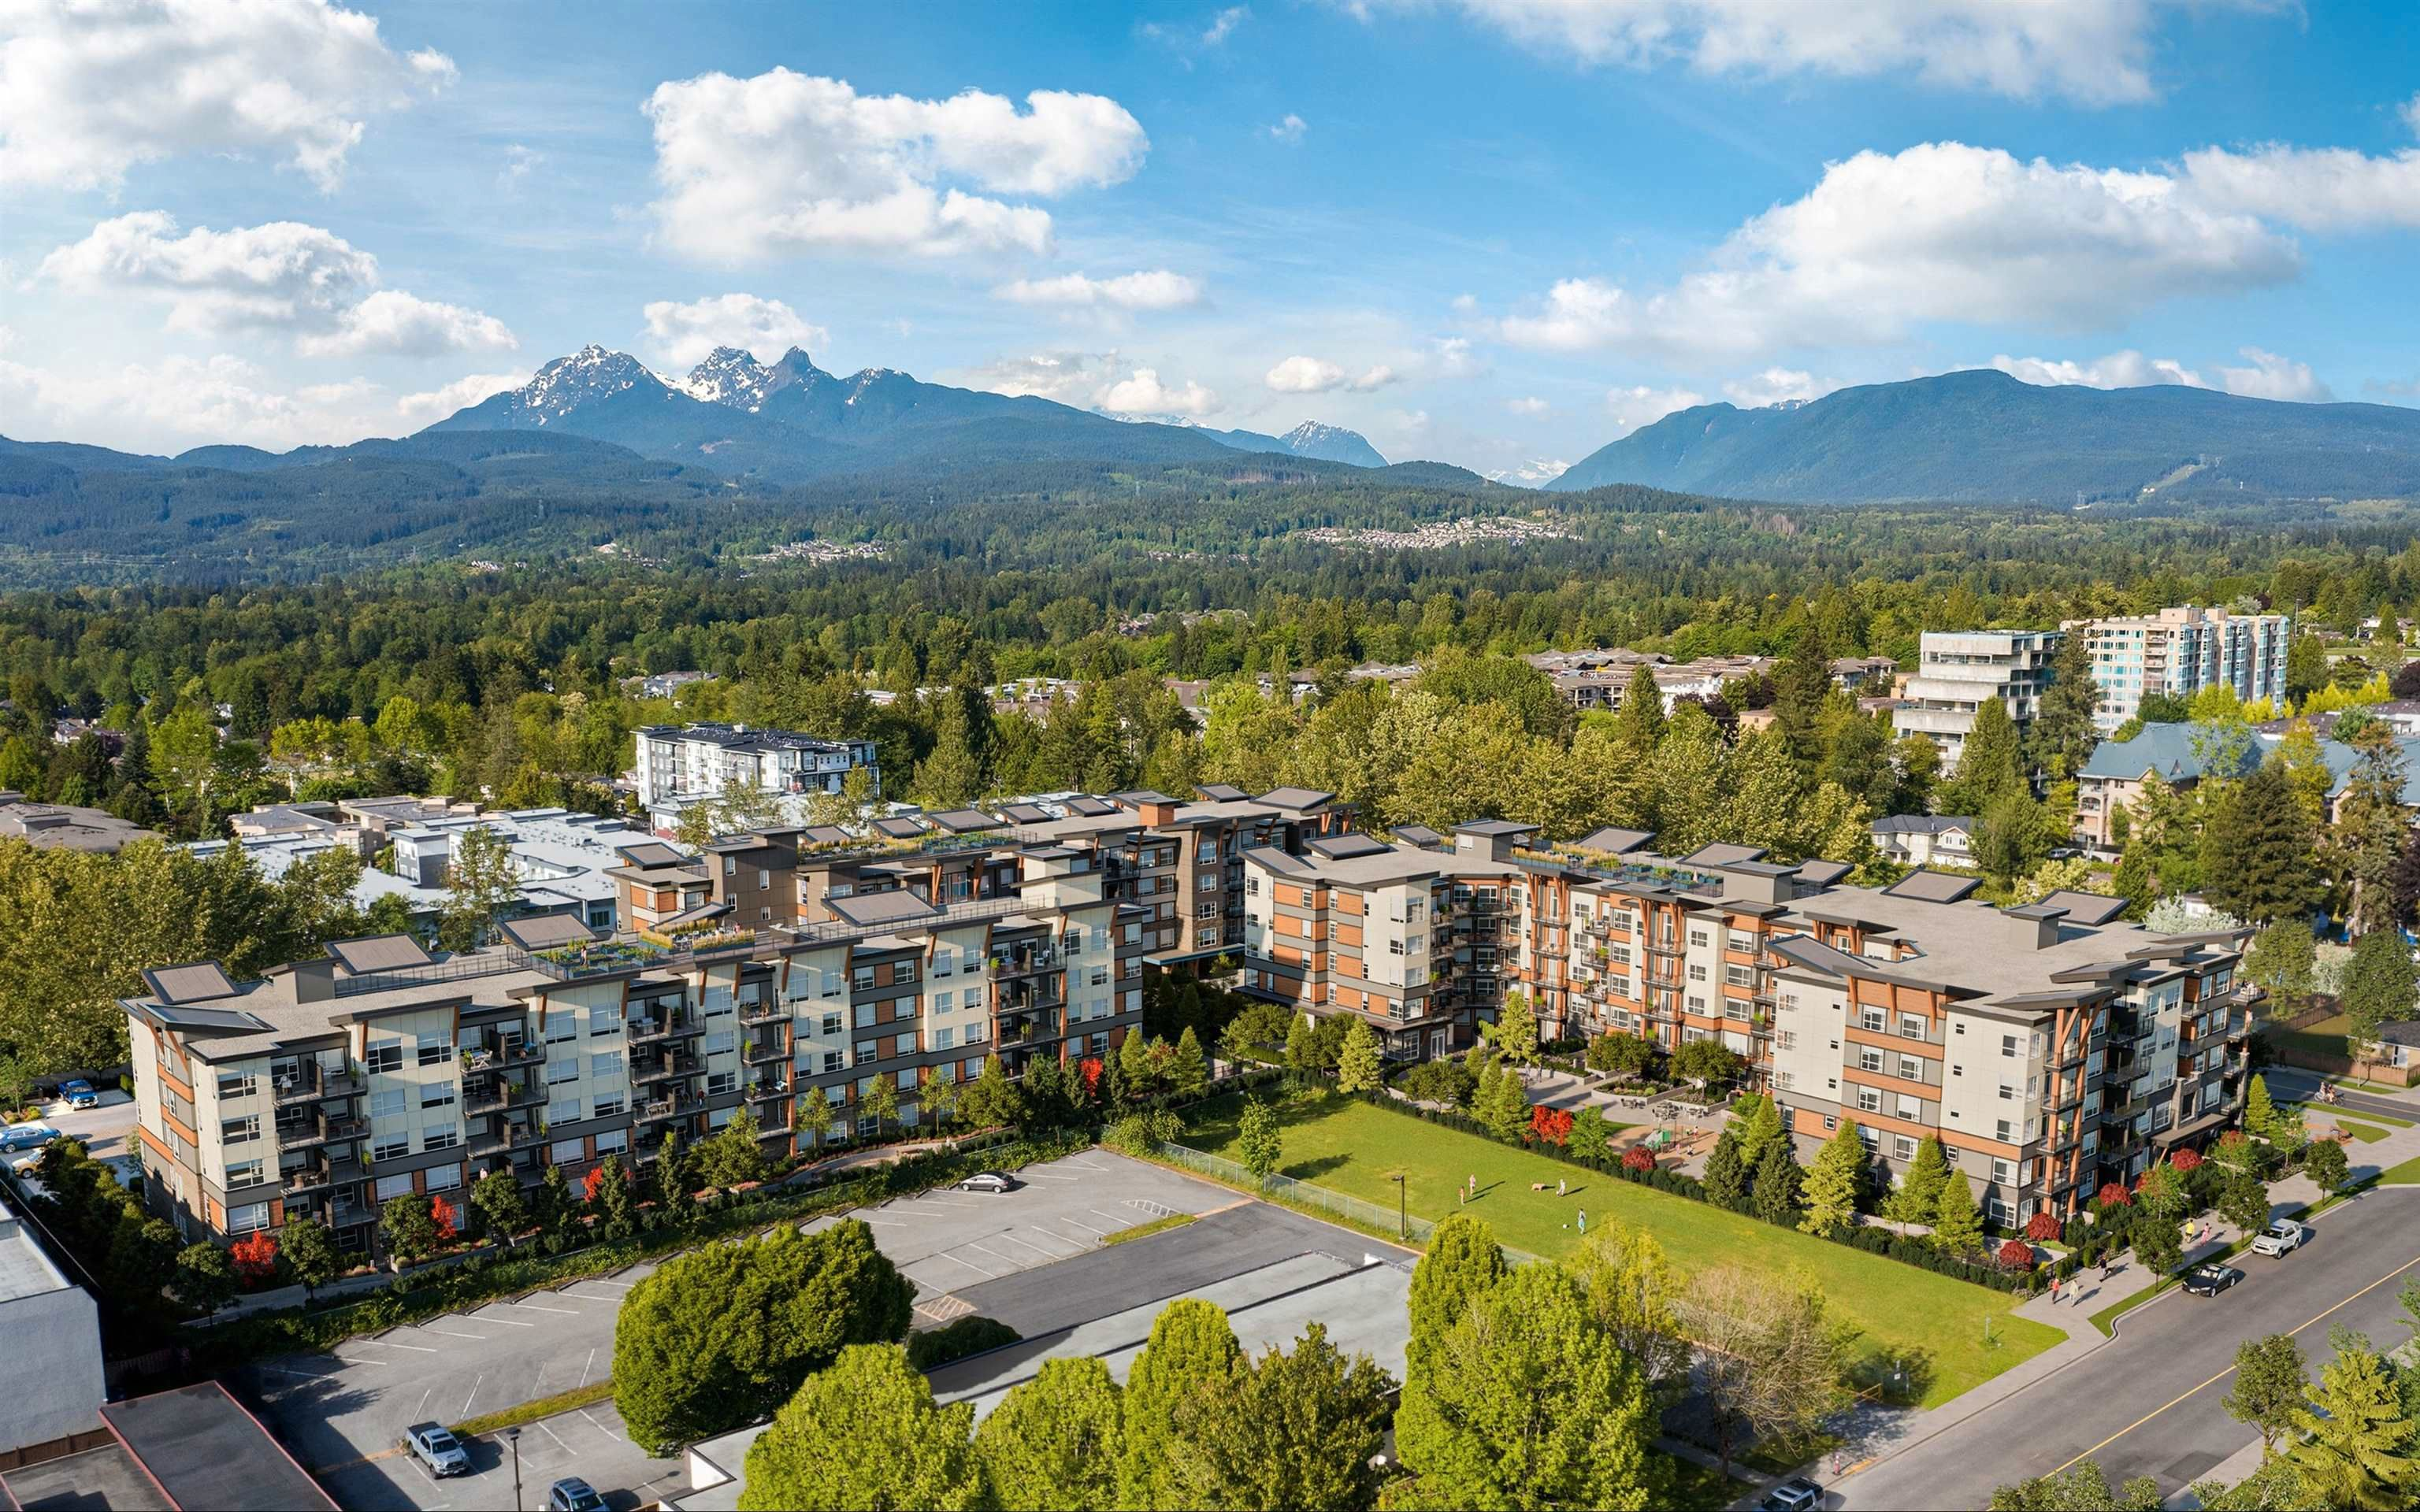 """Main Photo: 315 12109 223 Street in Maple Ridge: East Central Condo for sale in """"Inspire"""" : MLS®# R2624412"""